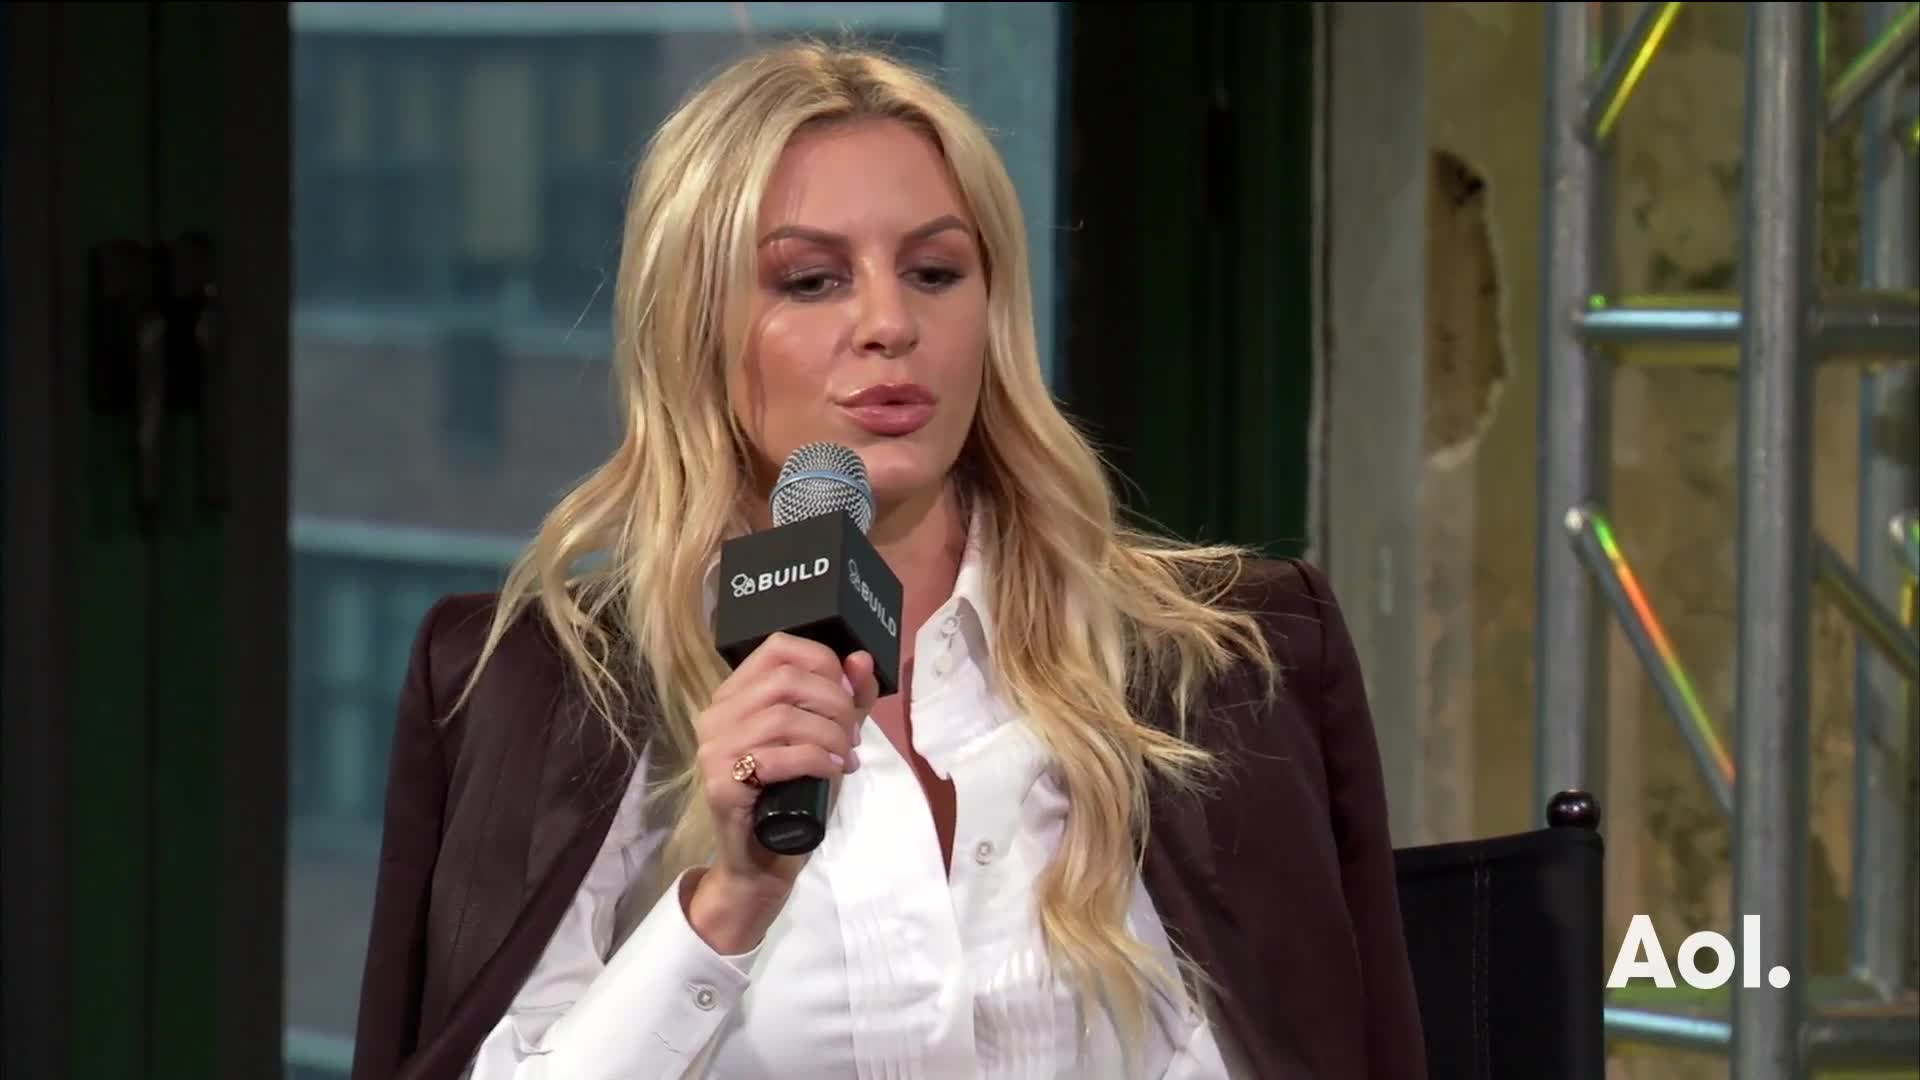 Morgan Stewart Discusses Her Sportswear Brand